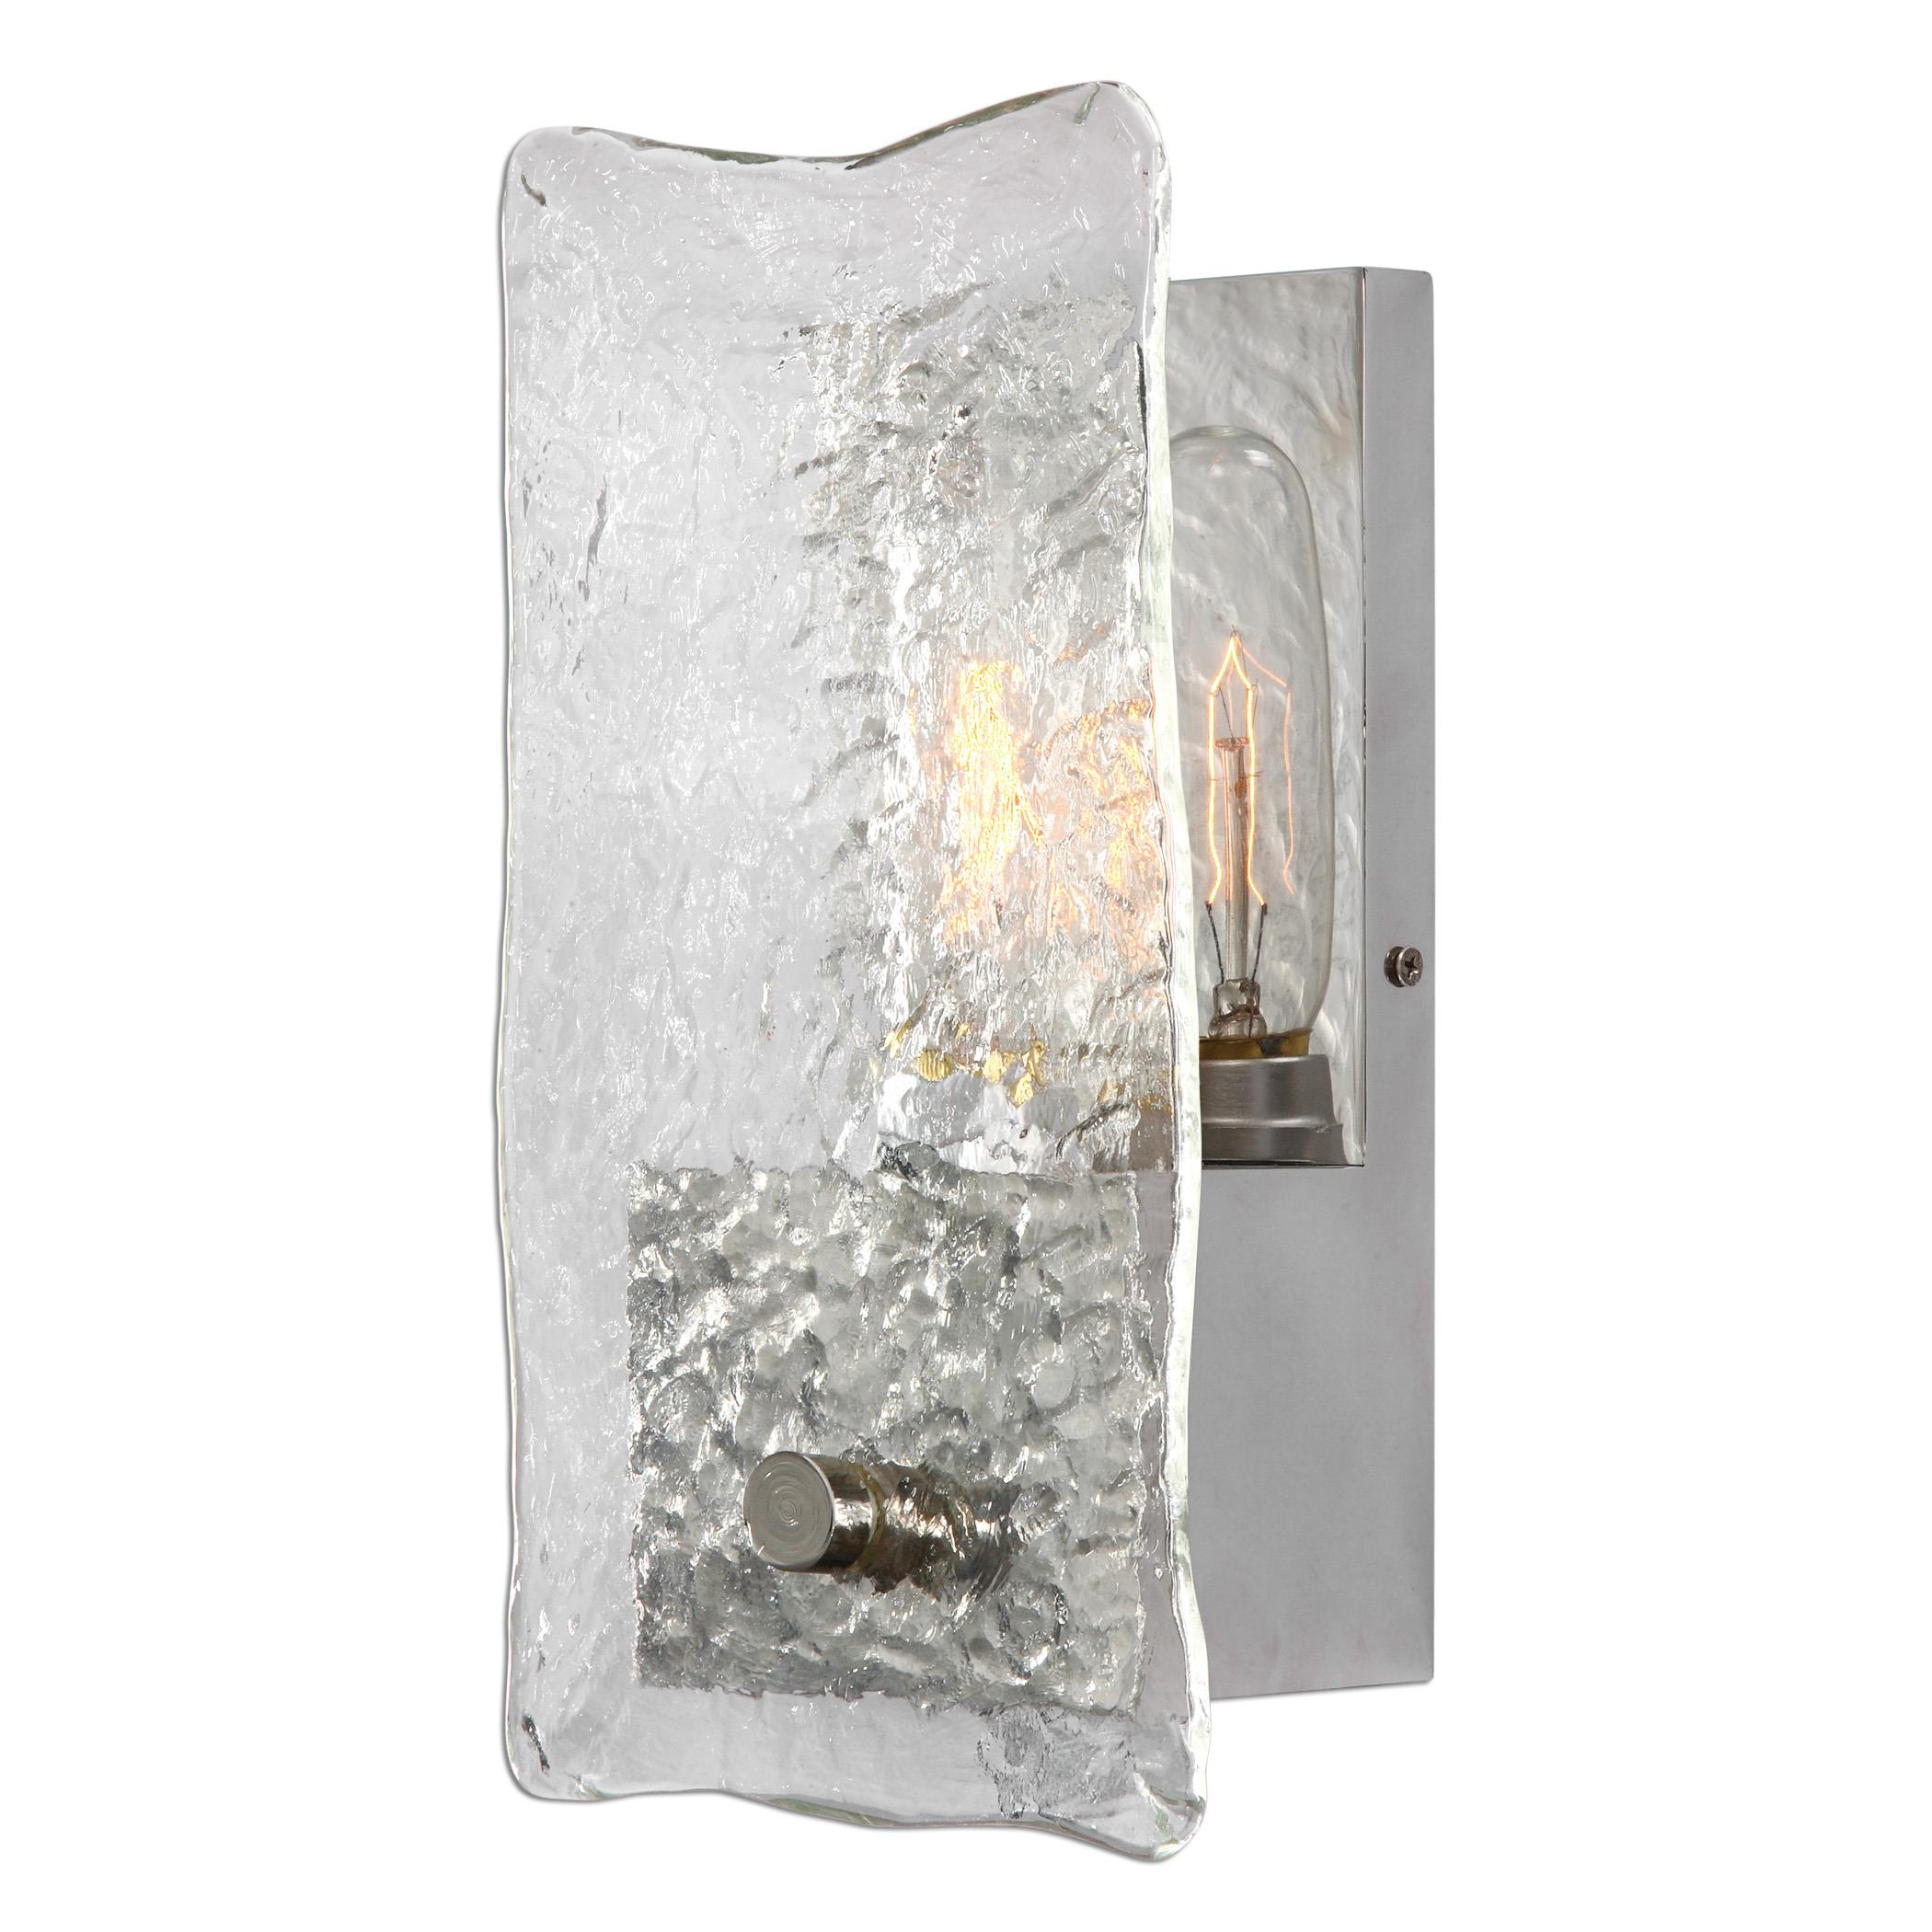 Uttermost Lighting Fixtures Cheminee 1 Light Textured Glass Sconce - Item Number: 22498